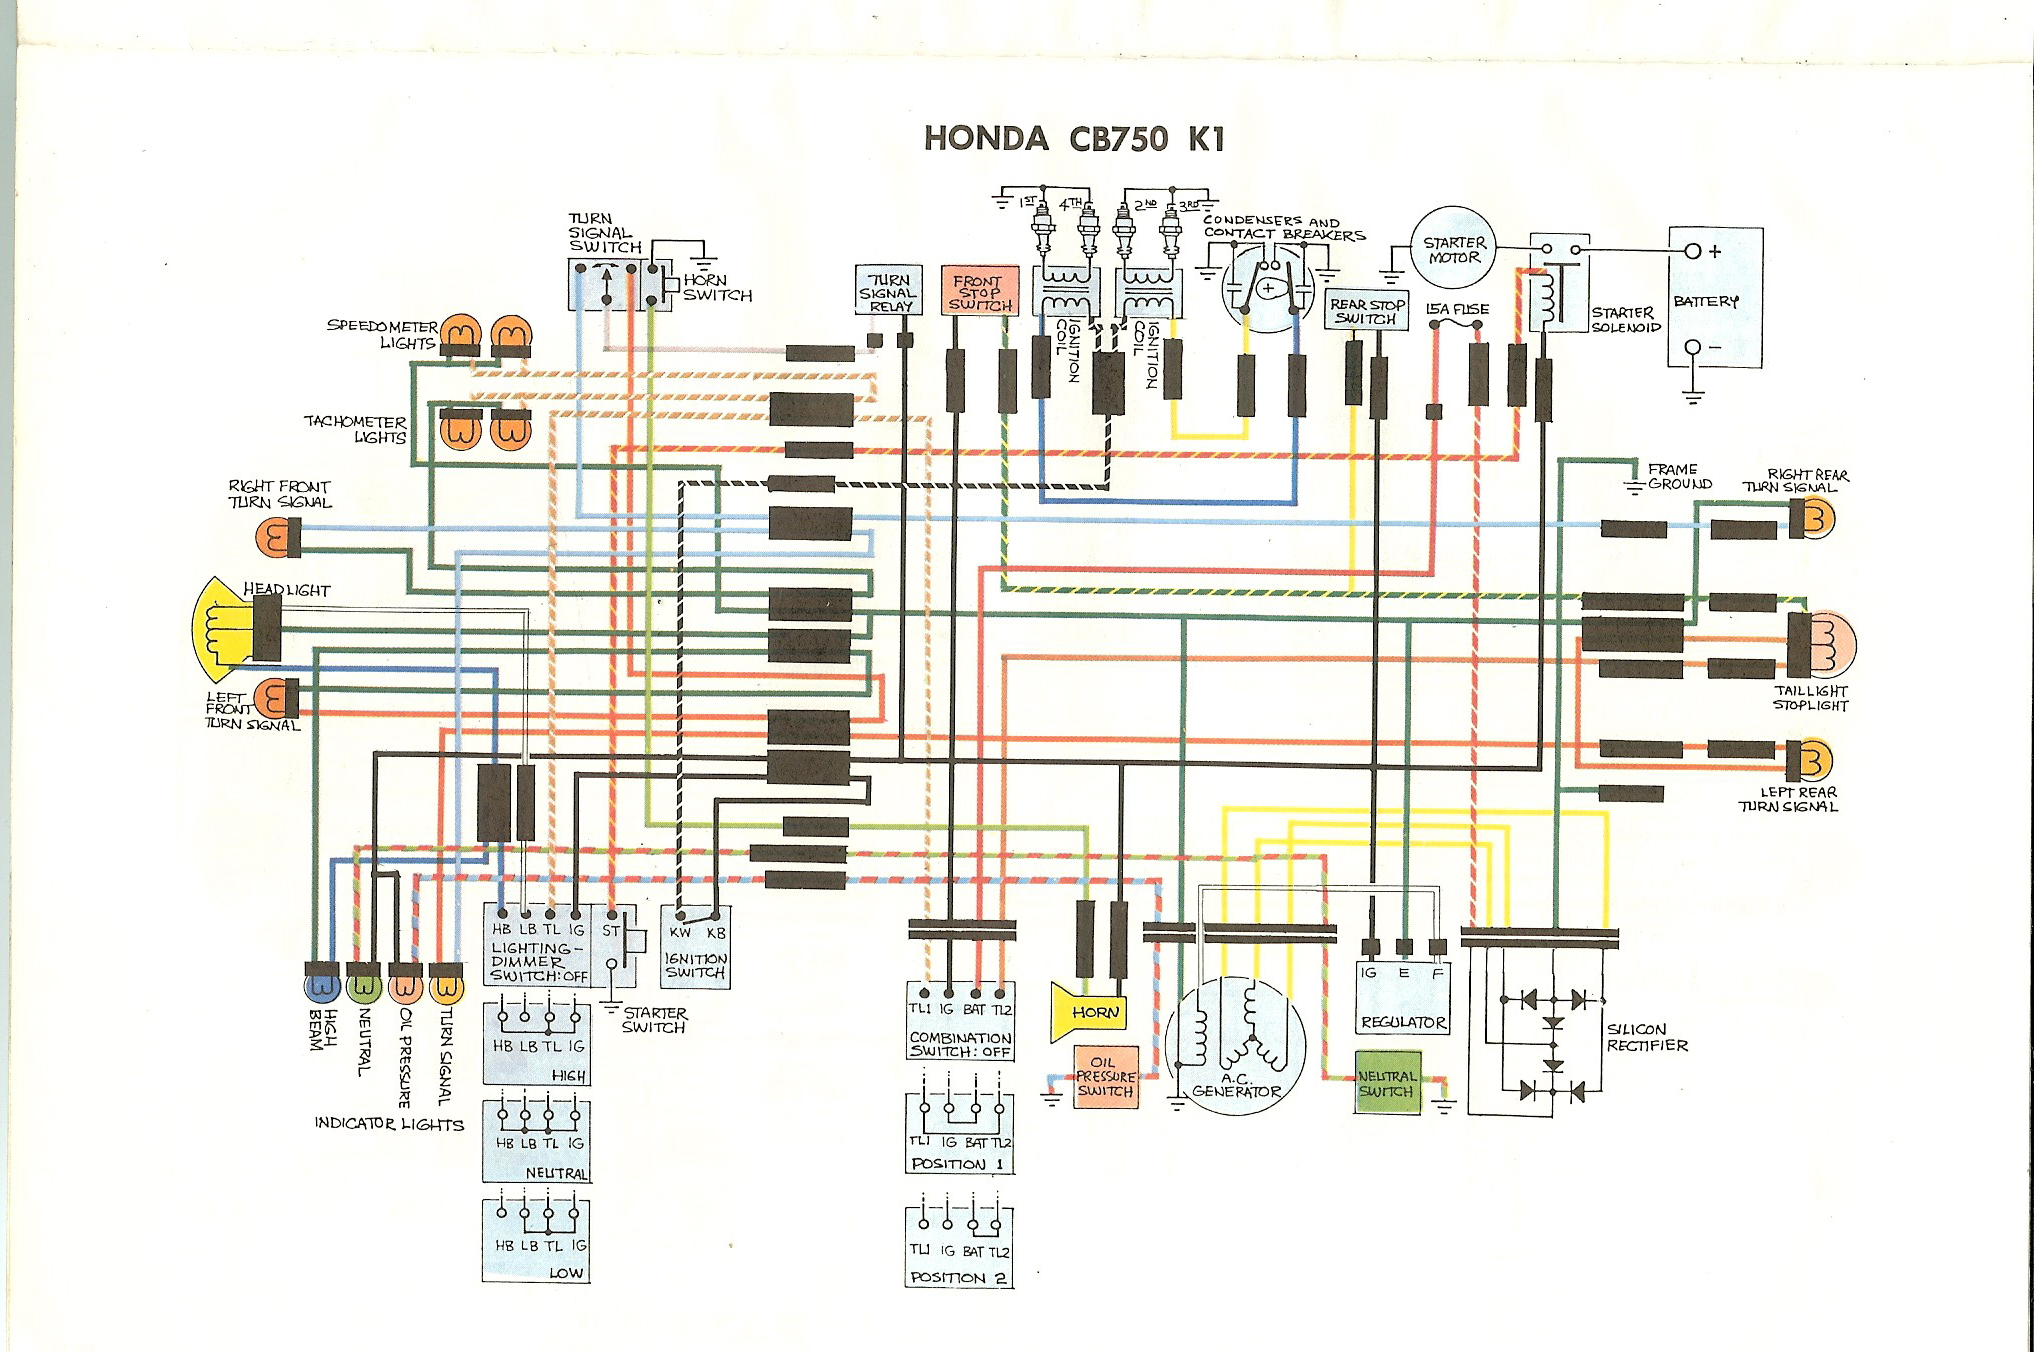 Interactive Honda Ct90 Wiring Diagrams Private Sharing About 1971 Diagram Schematic Rh Bestkodiaddons Co